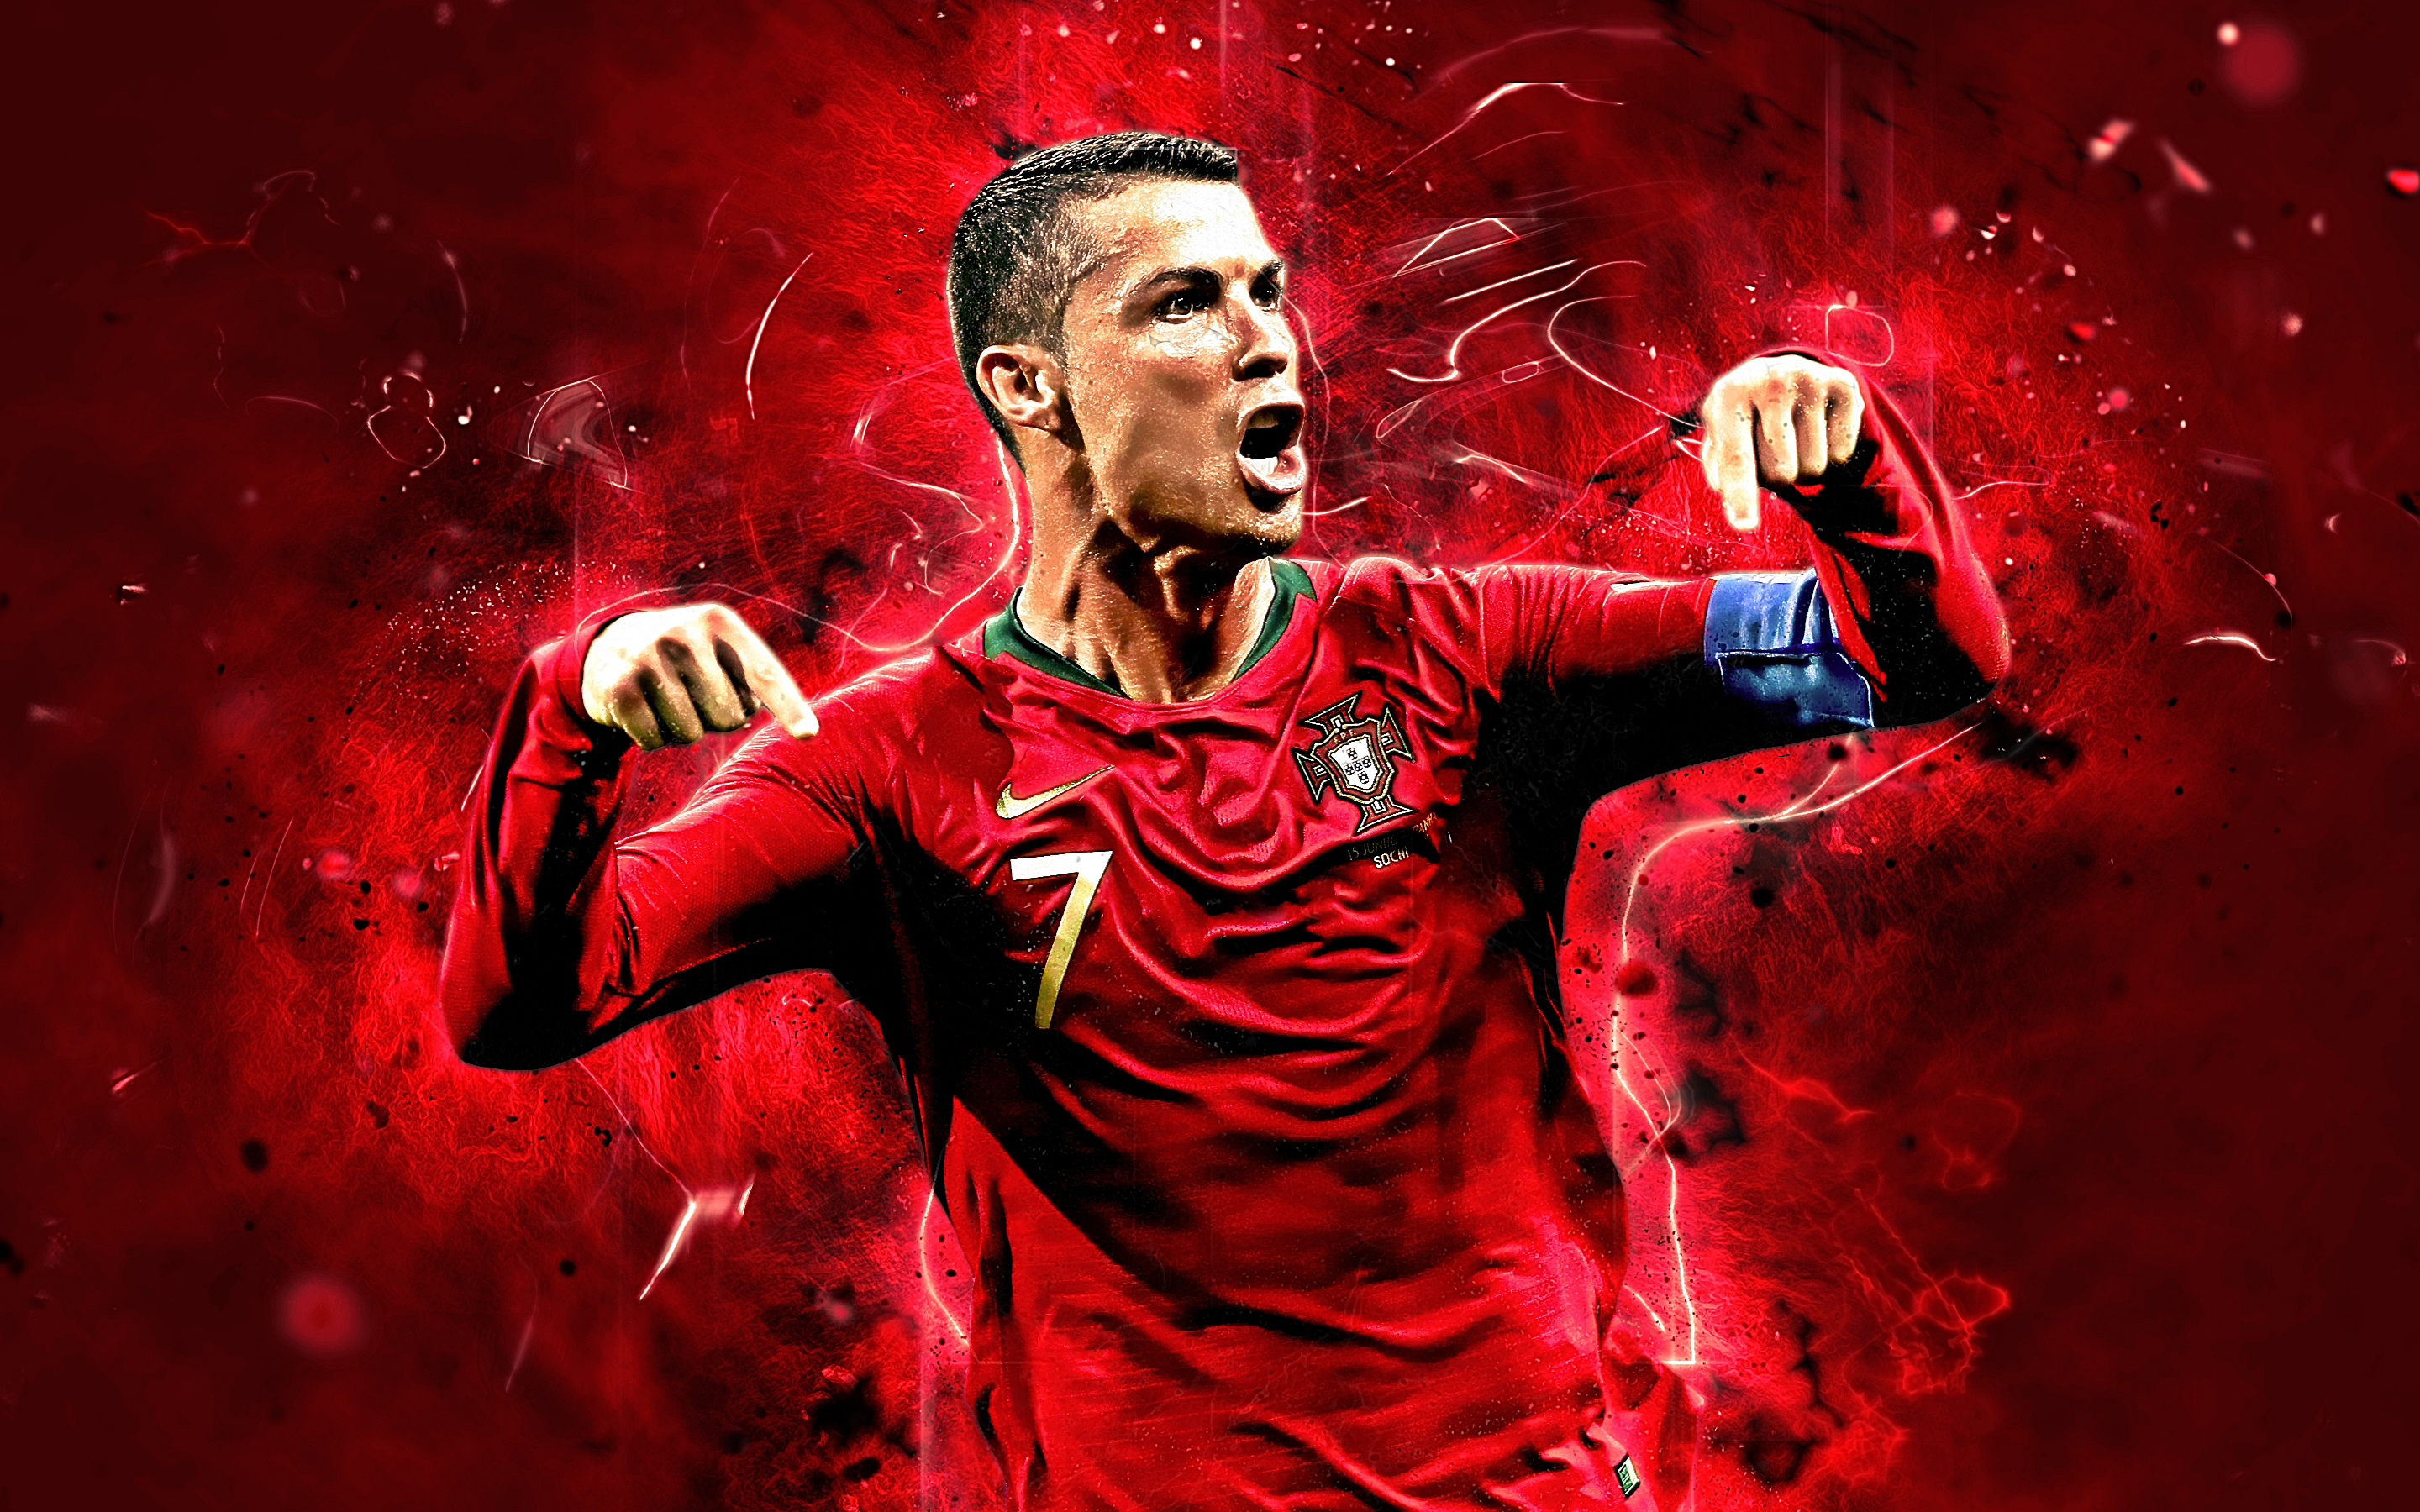 Cristiano ronaldo portugal hd wallpaper background - C ronaldo wallpaper portugal ...